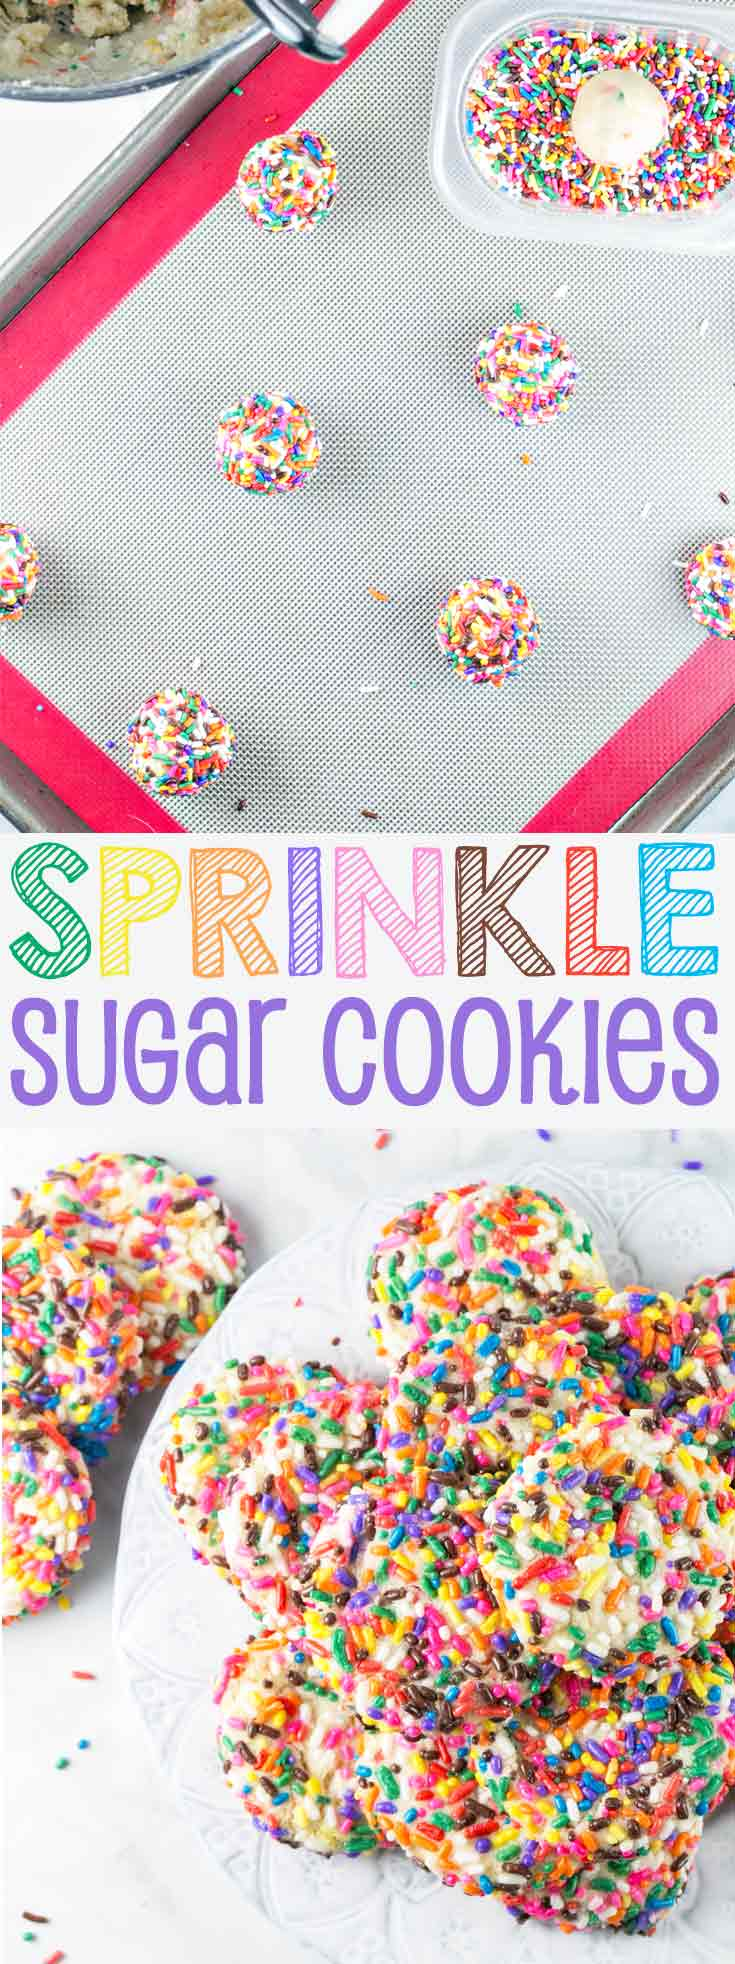 Sprinkle Sugar Cookies: the most festive of all cookies, a soft sugar cookie rolled in bright colored sprinkles. {Bunsen Burner Bakery} #sprinkles #cookies #sugarcookies